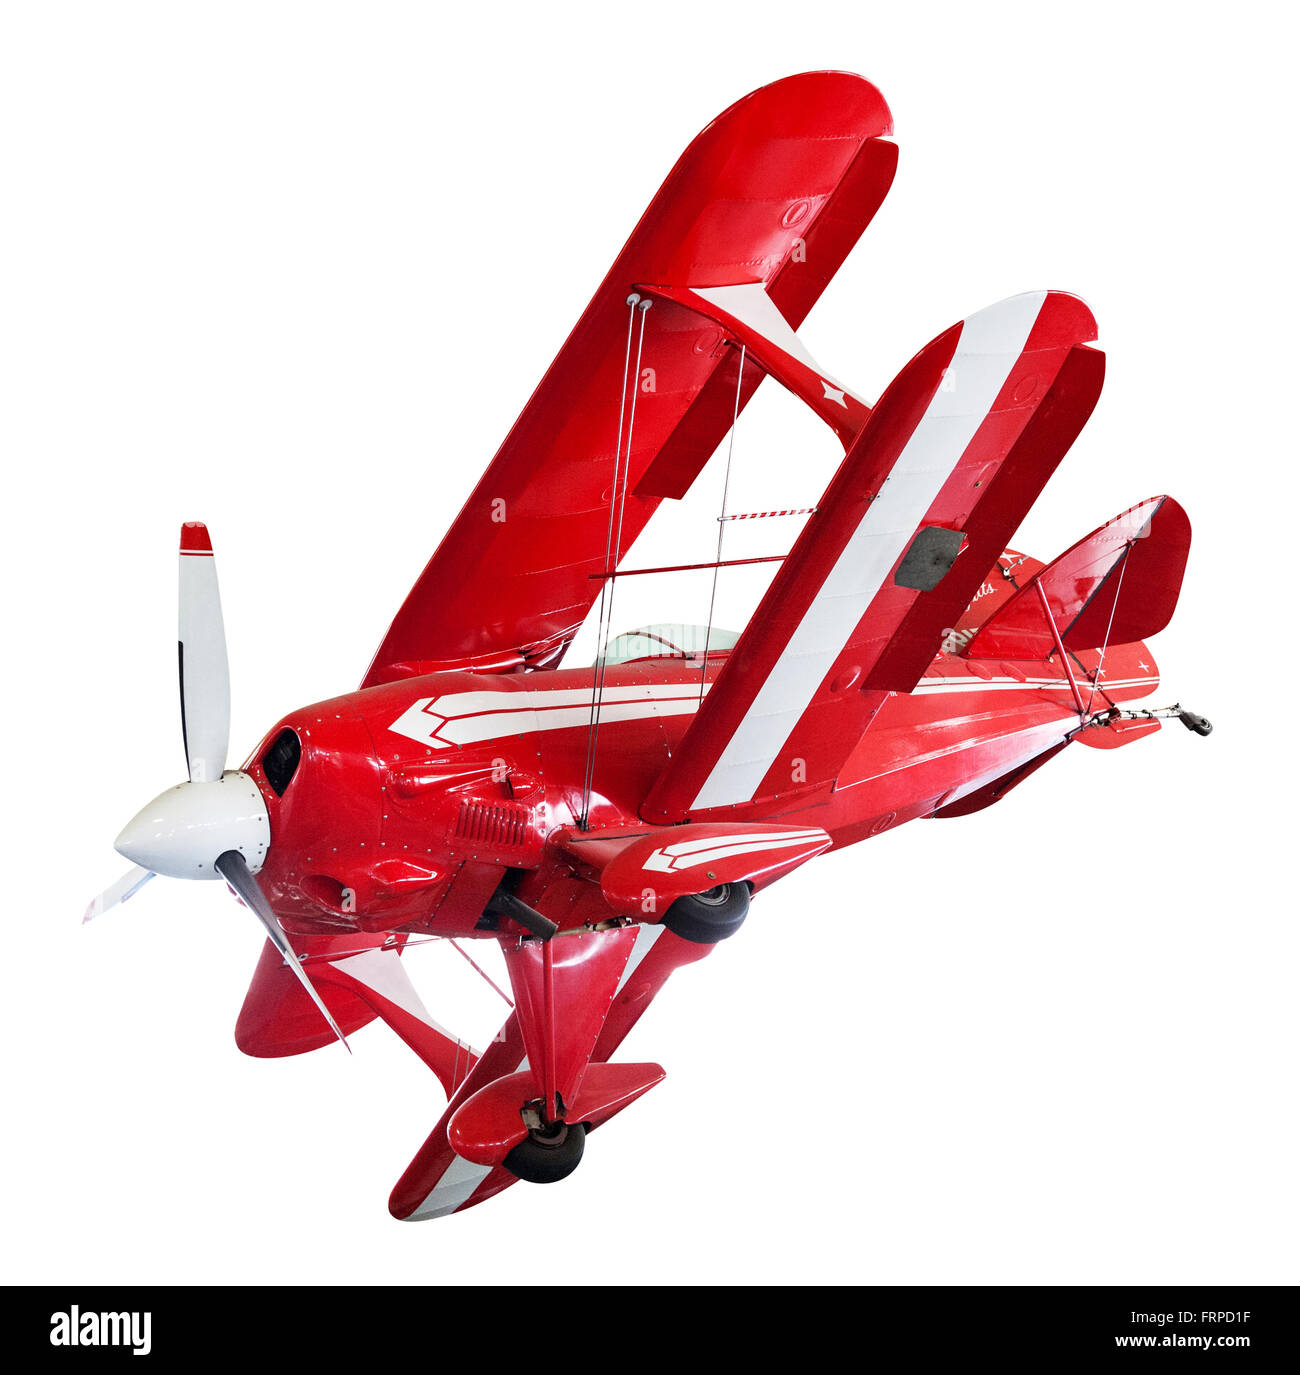 Vintage red and white bi-plane isolated on white positioned as though banking in flight - Stock Image